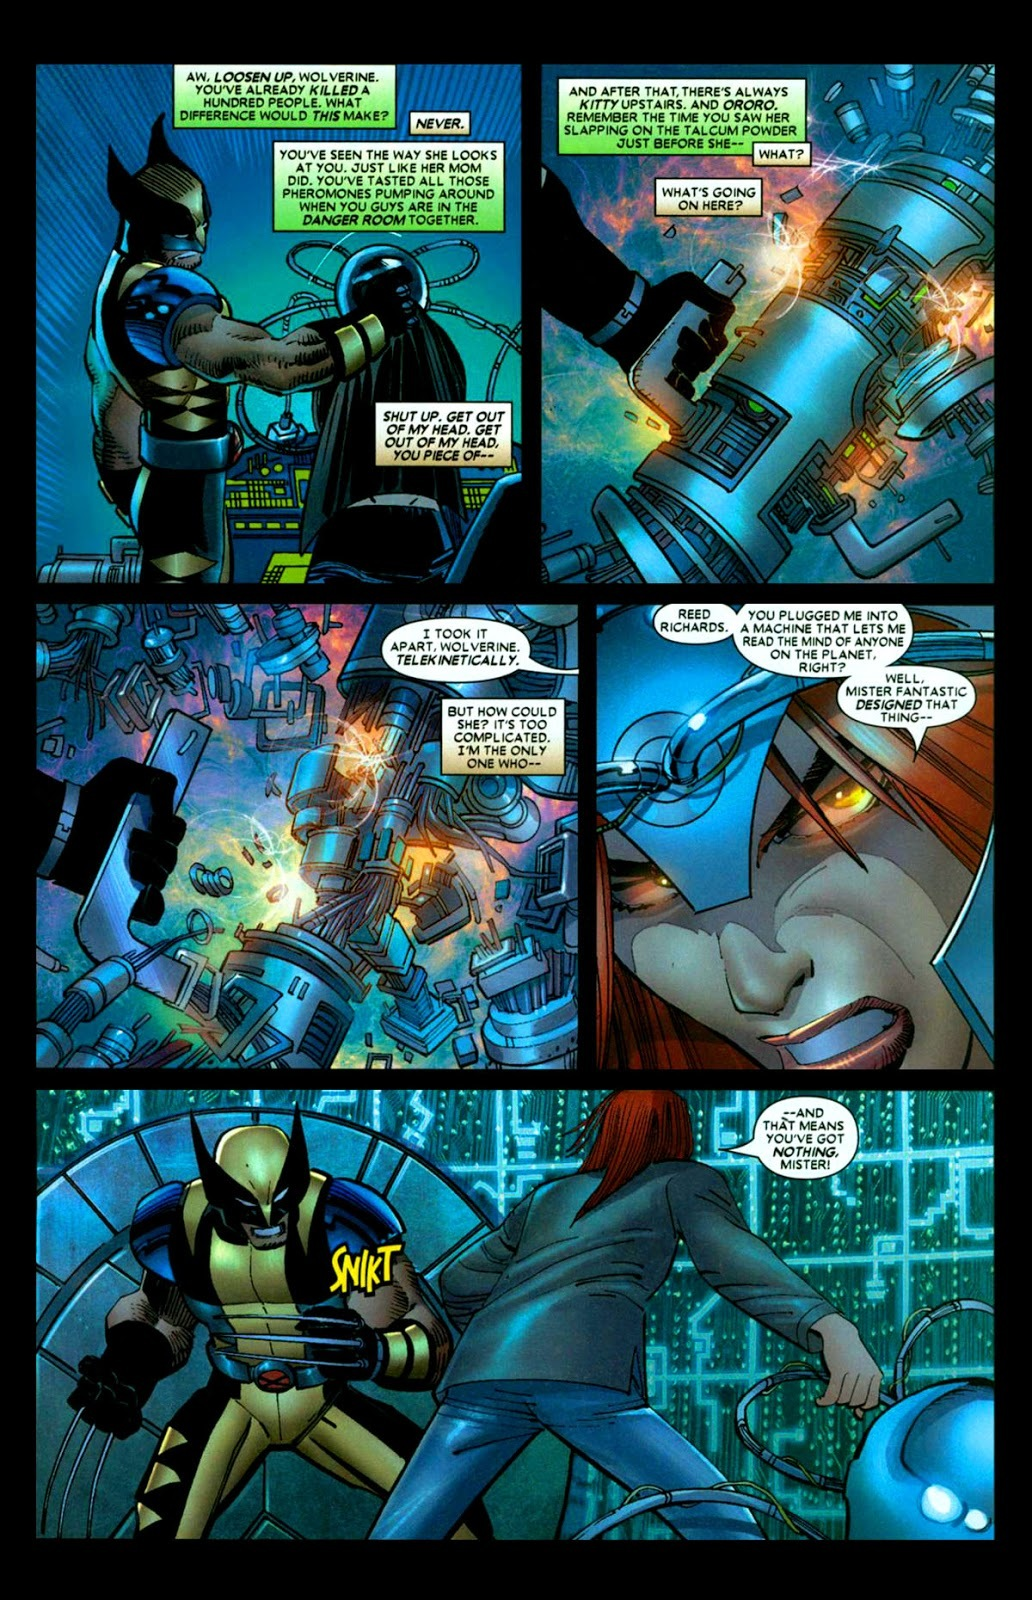 After reading Reed Richard's mind, She telekinetically dismantles a Terraforming device Wolverine was using as a bomb.